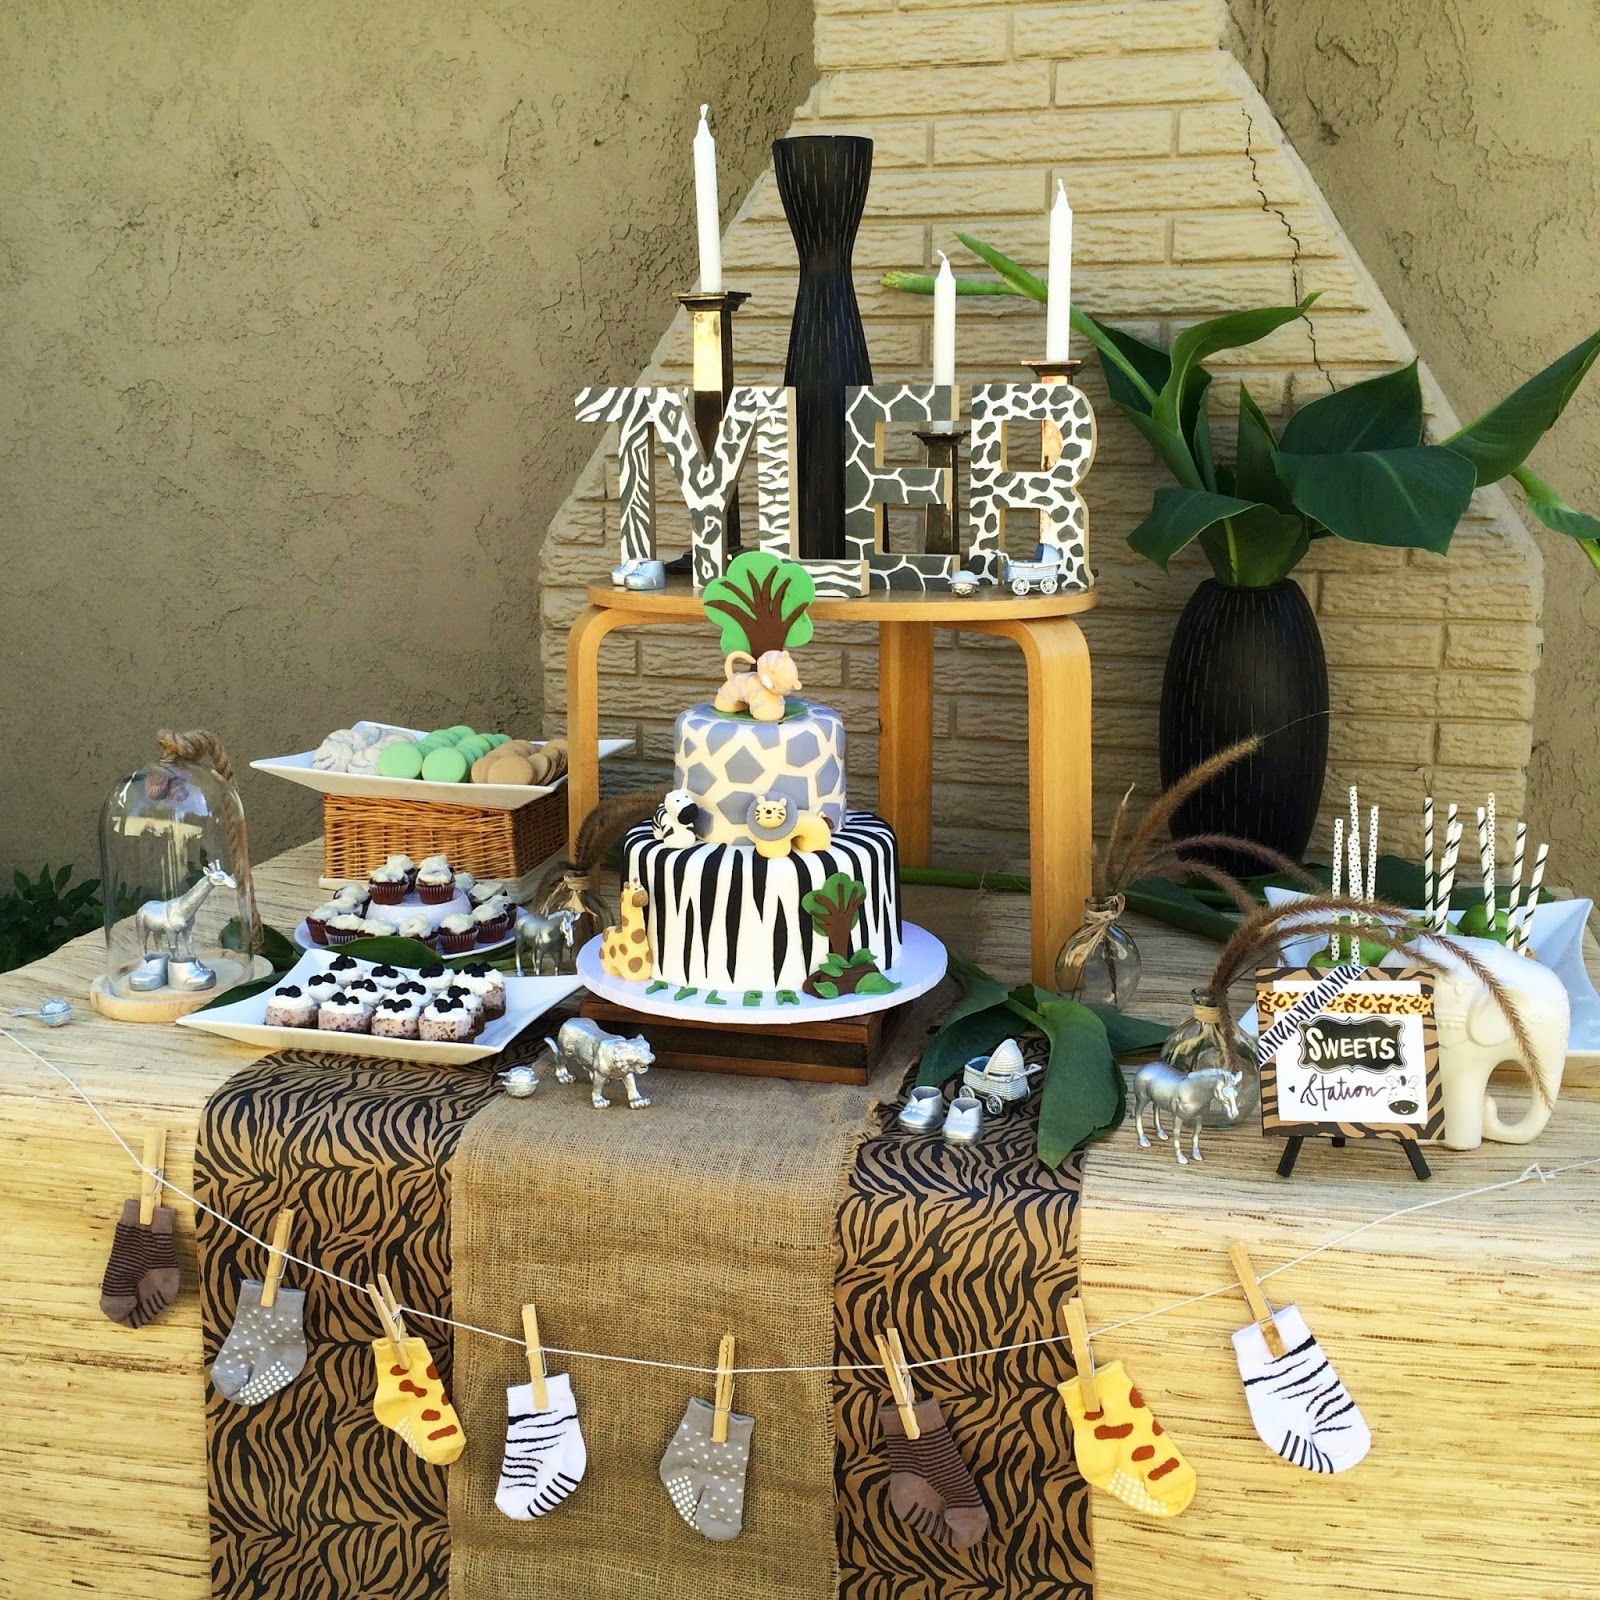 Jungle Baby Shower Decorations: How To Design, Style, And DIY Your Way To A Modern Safari